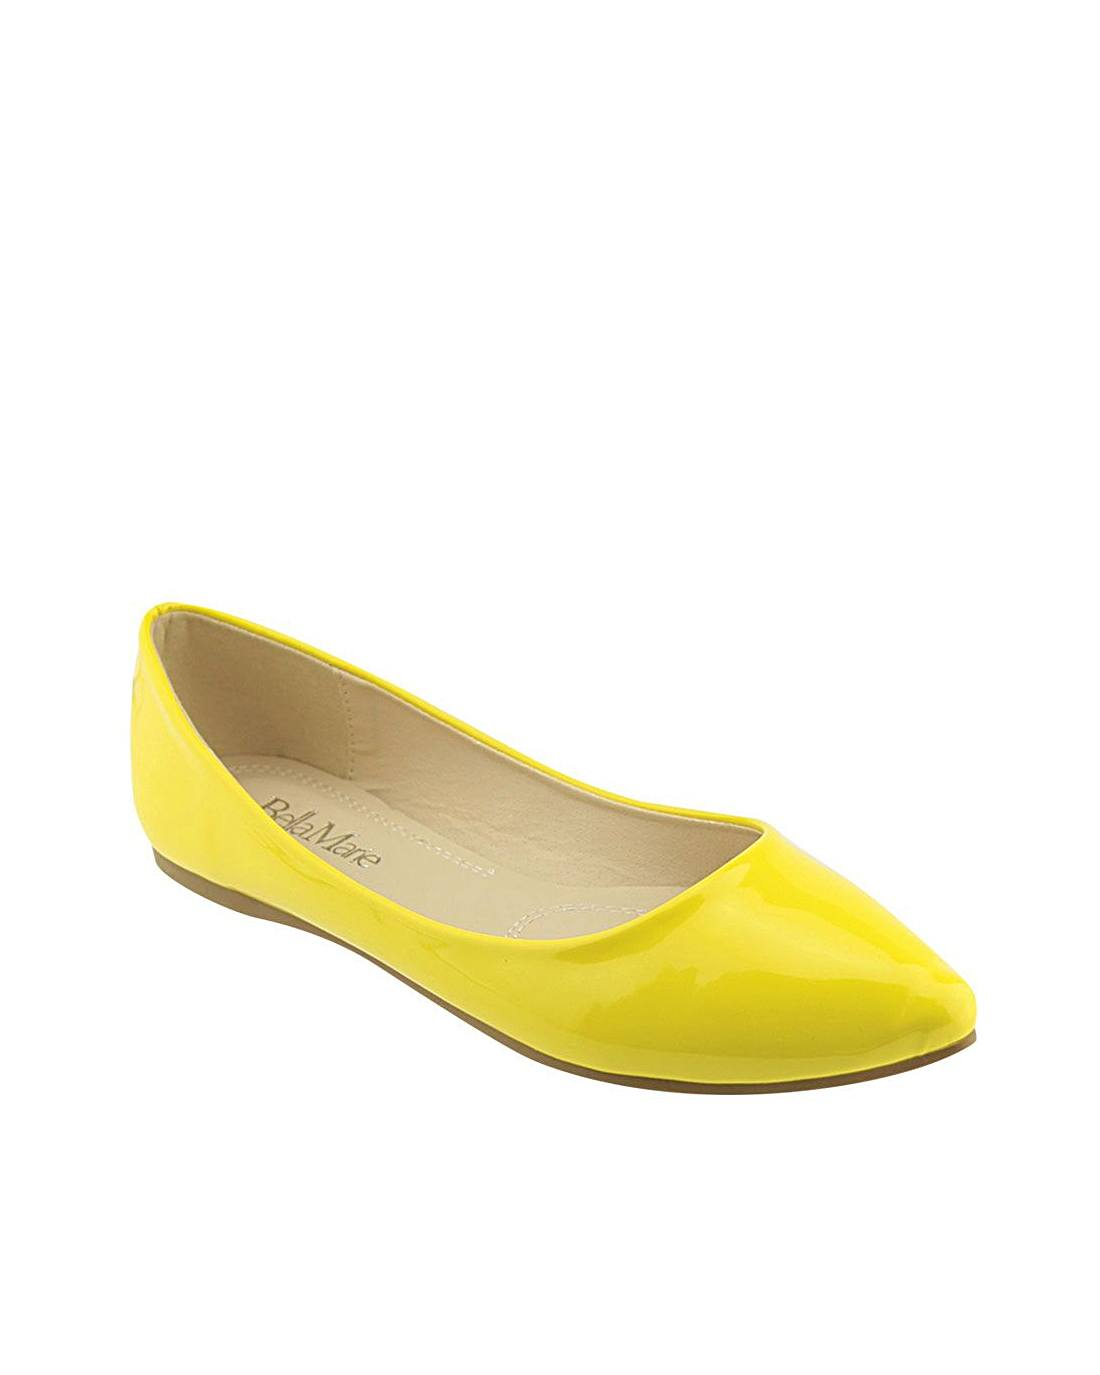 Solid Glossy Surface Pointed Toe Flats-5.5-MY UPSCALE STORE